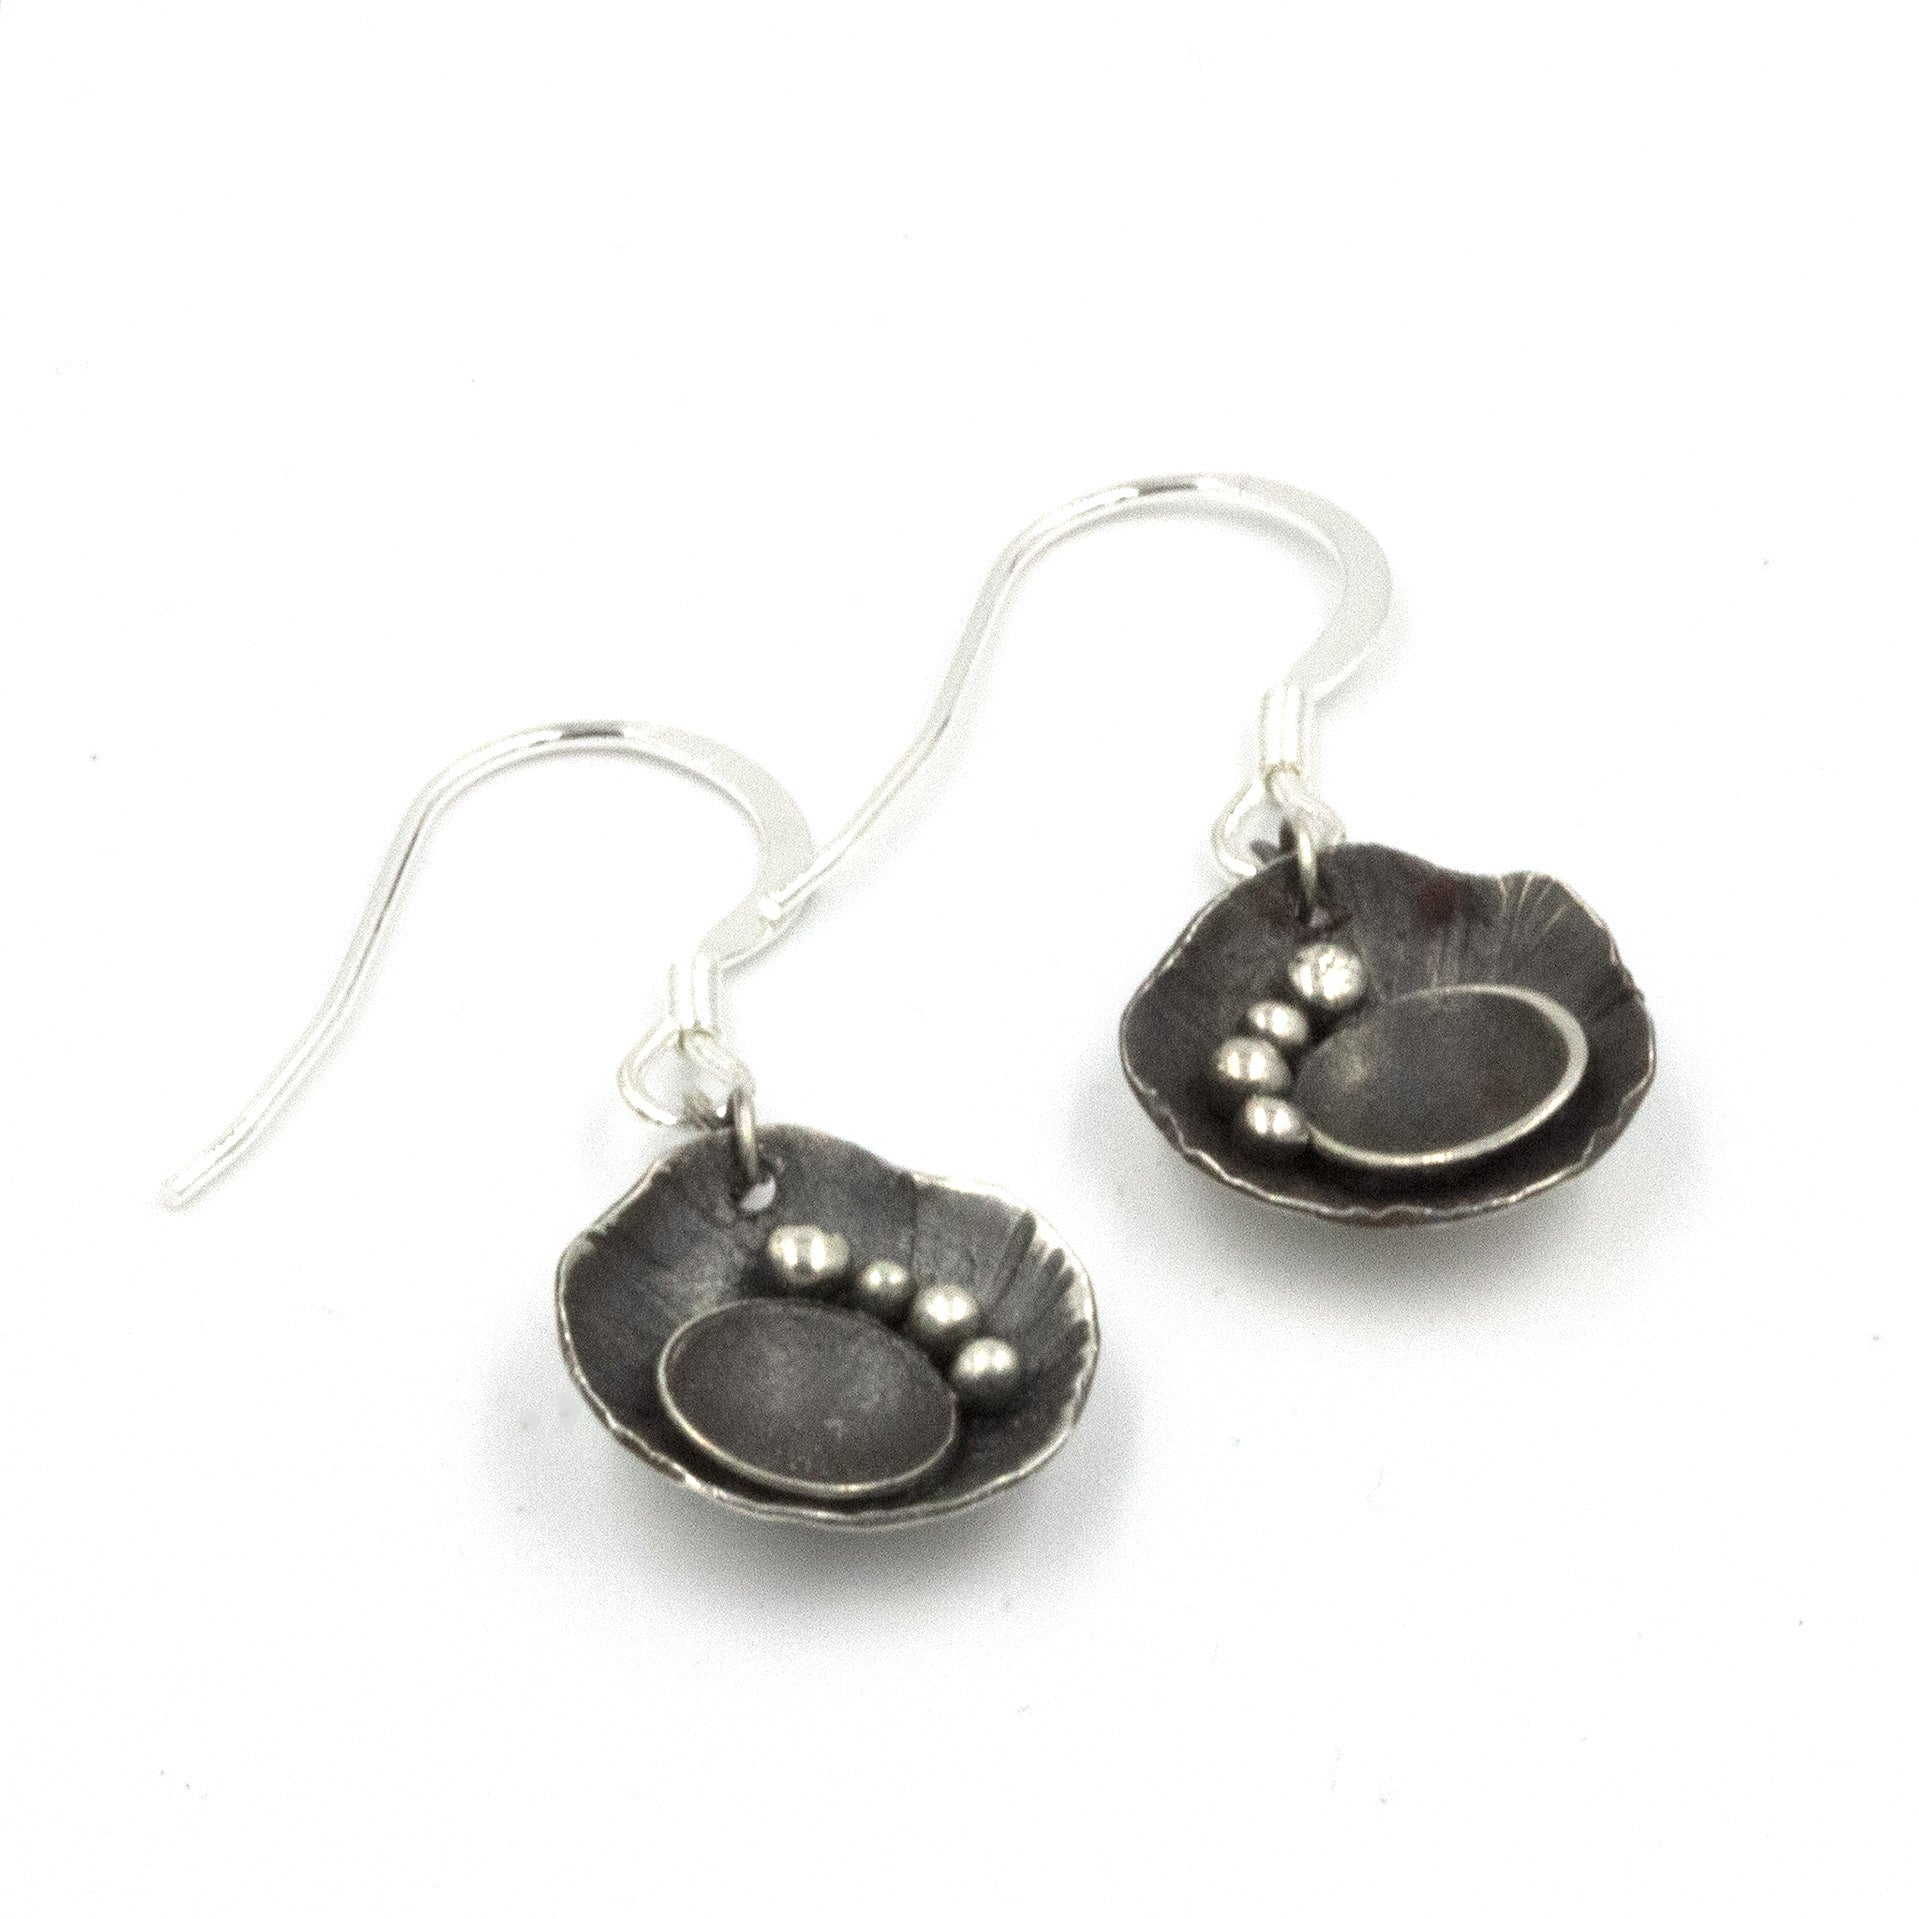 Handmade Rock Pool Drop Earrings, made in sterling silver, and inspired by rock pools on the Cornish Coast